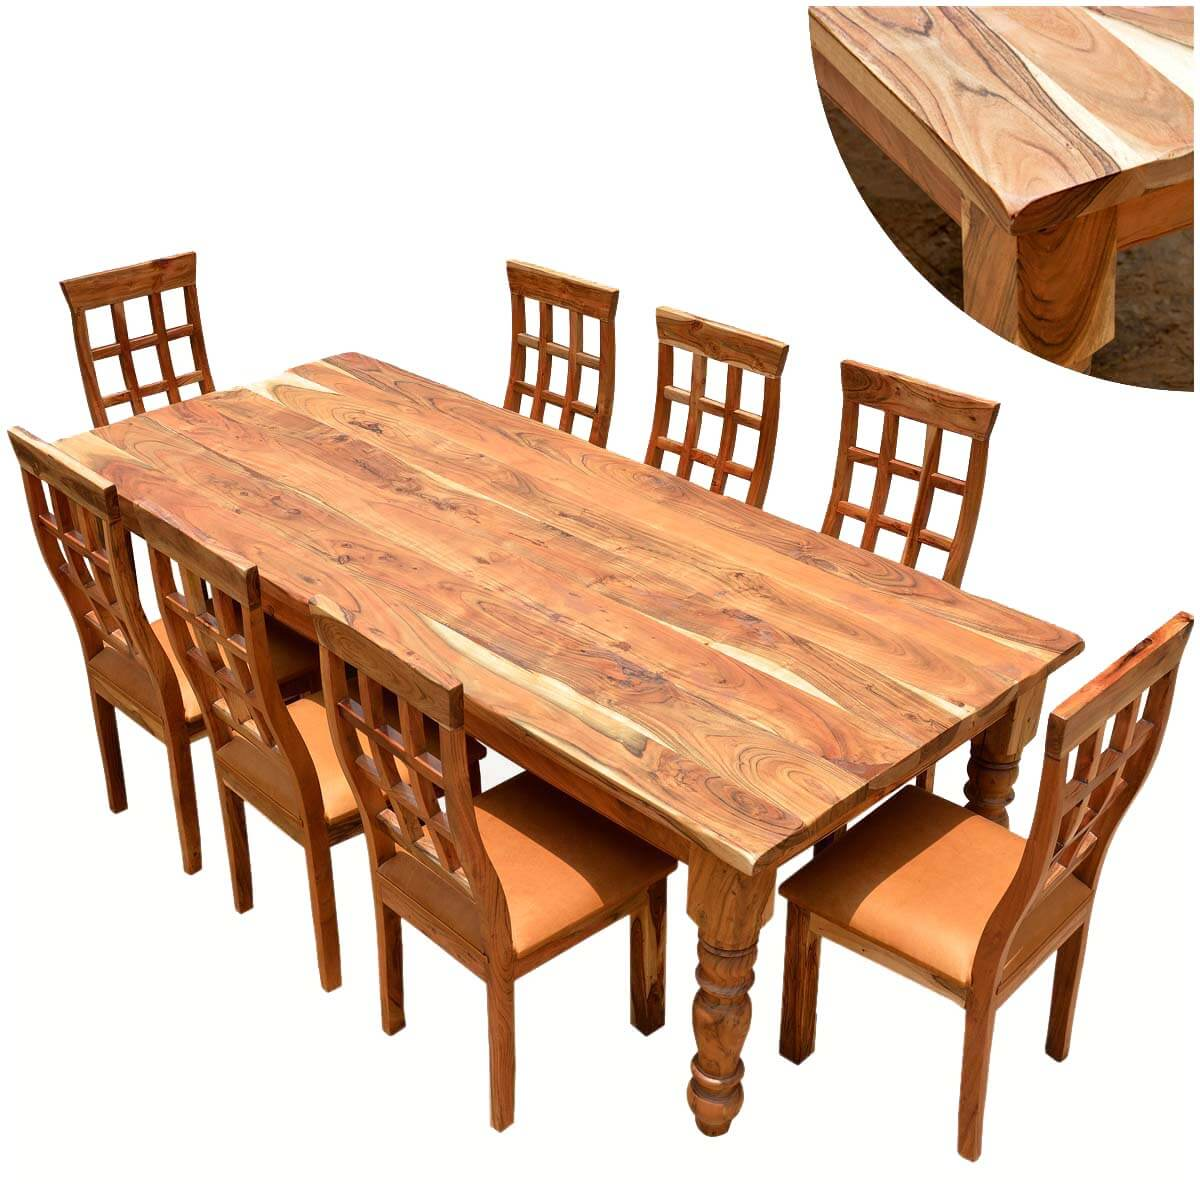 rustic furniture farmhouse solid wood dining table chair set. Black Bedroom Furniture Sets. Home Design Ideas